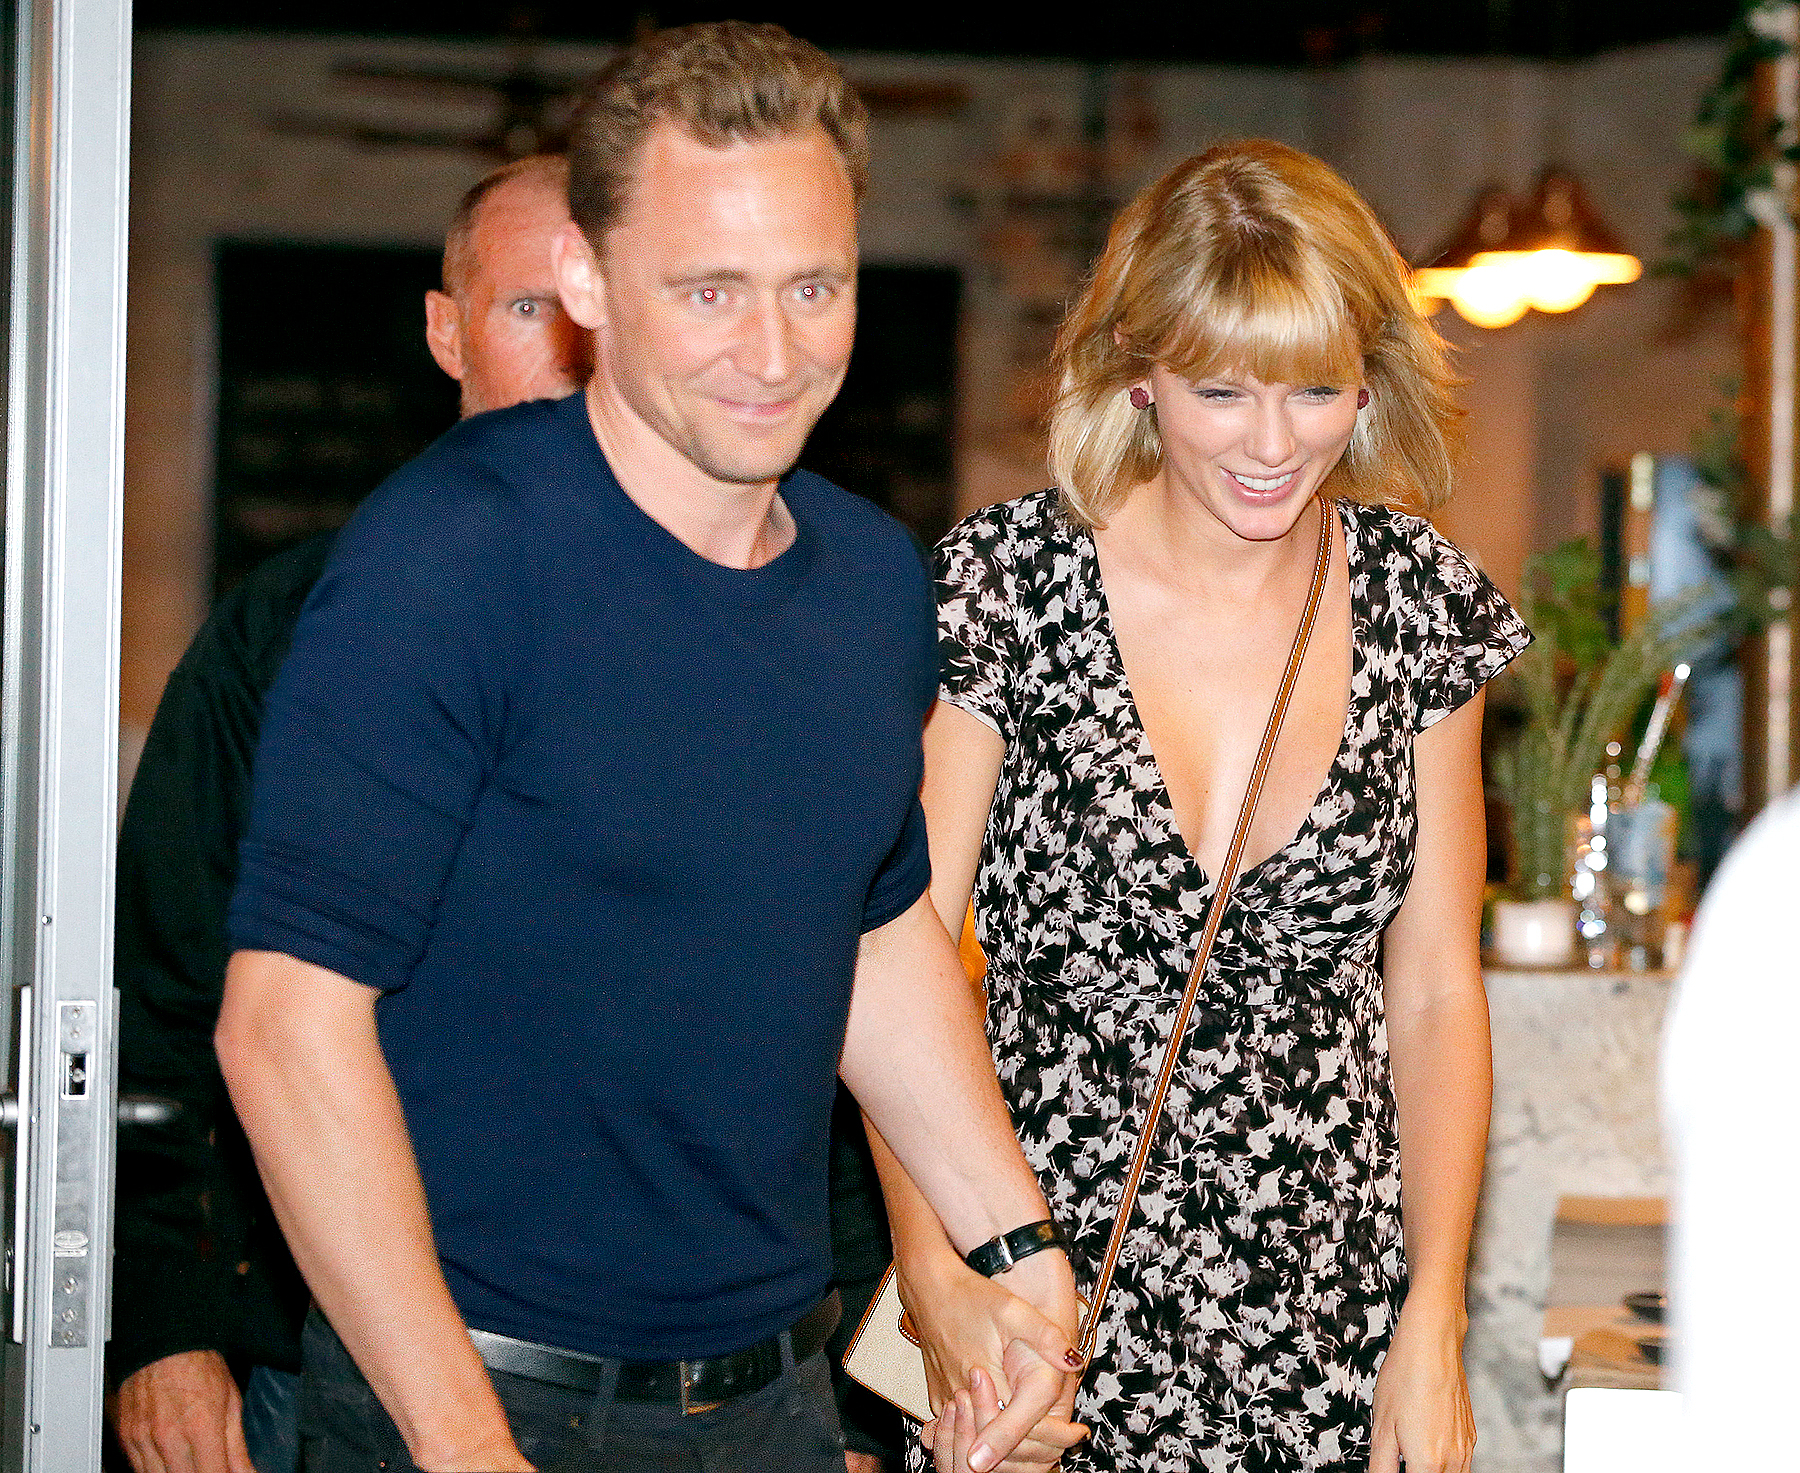 Tom Hiddleston and Taylor Swift leave restaurant 'Gemelli Italian' in Broadbeach on the Gold Coast, Queensland.